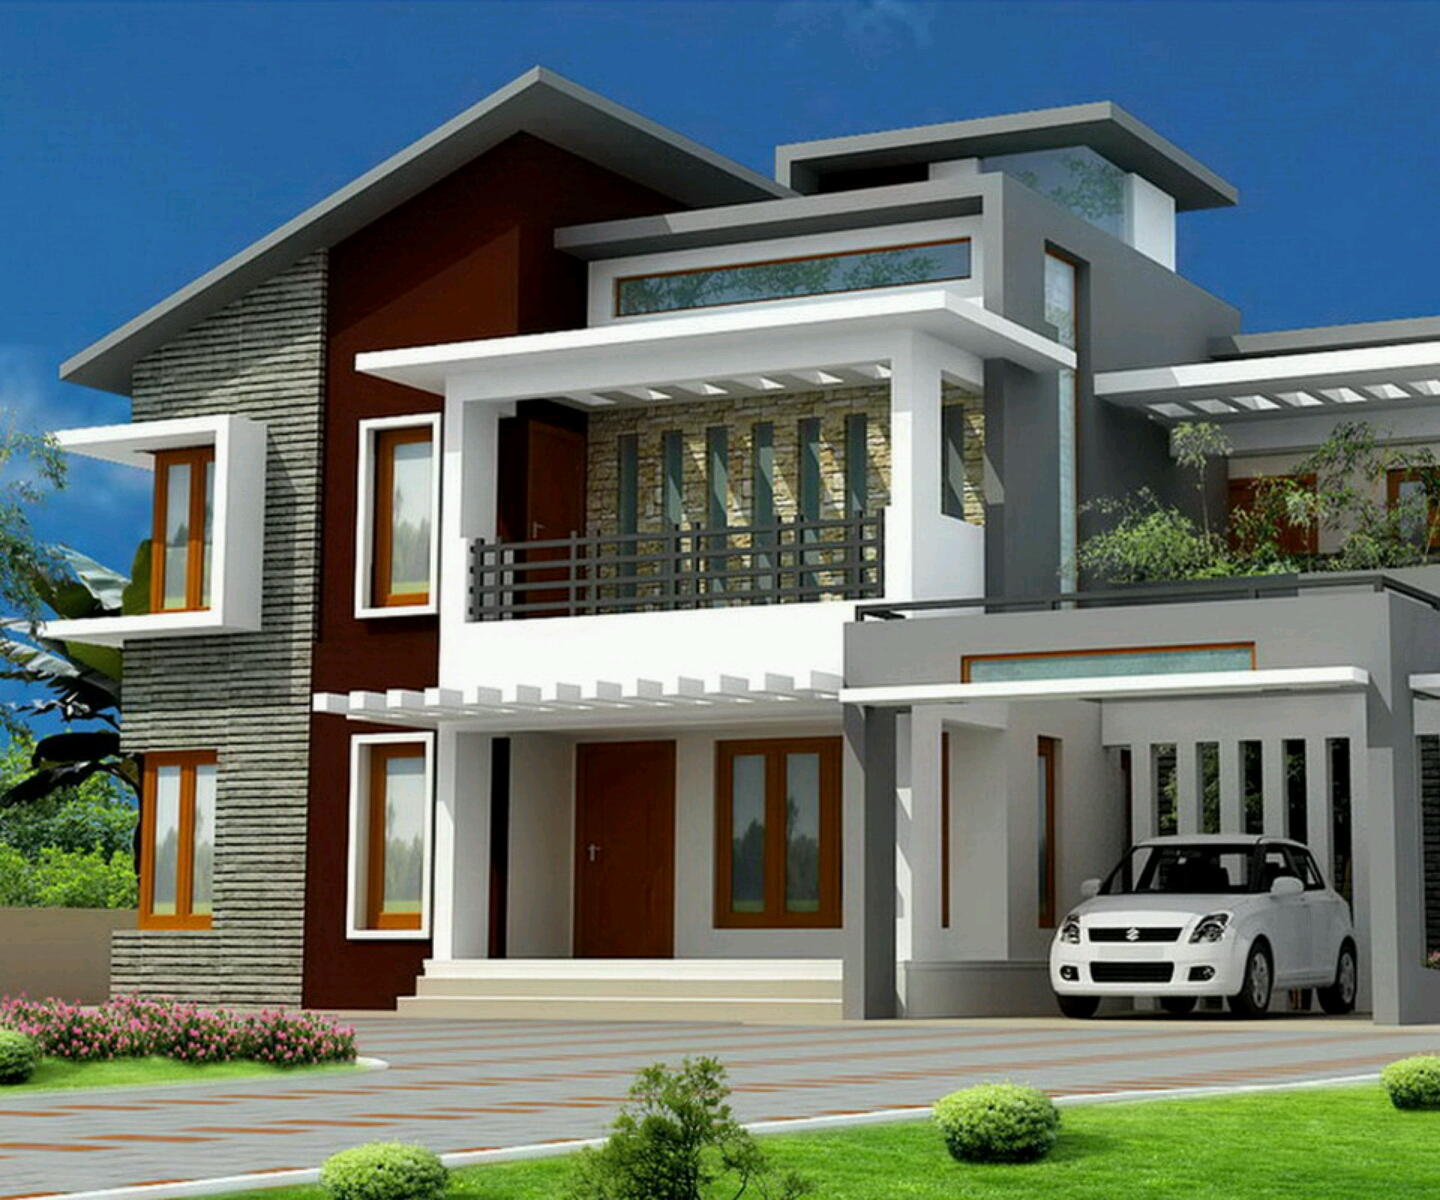 Excellent Modern Home Design Exterior 1440 x 1200 · 1128 kB · jpeg